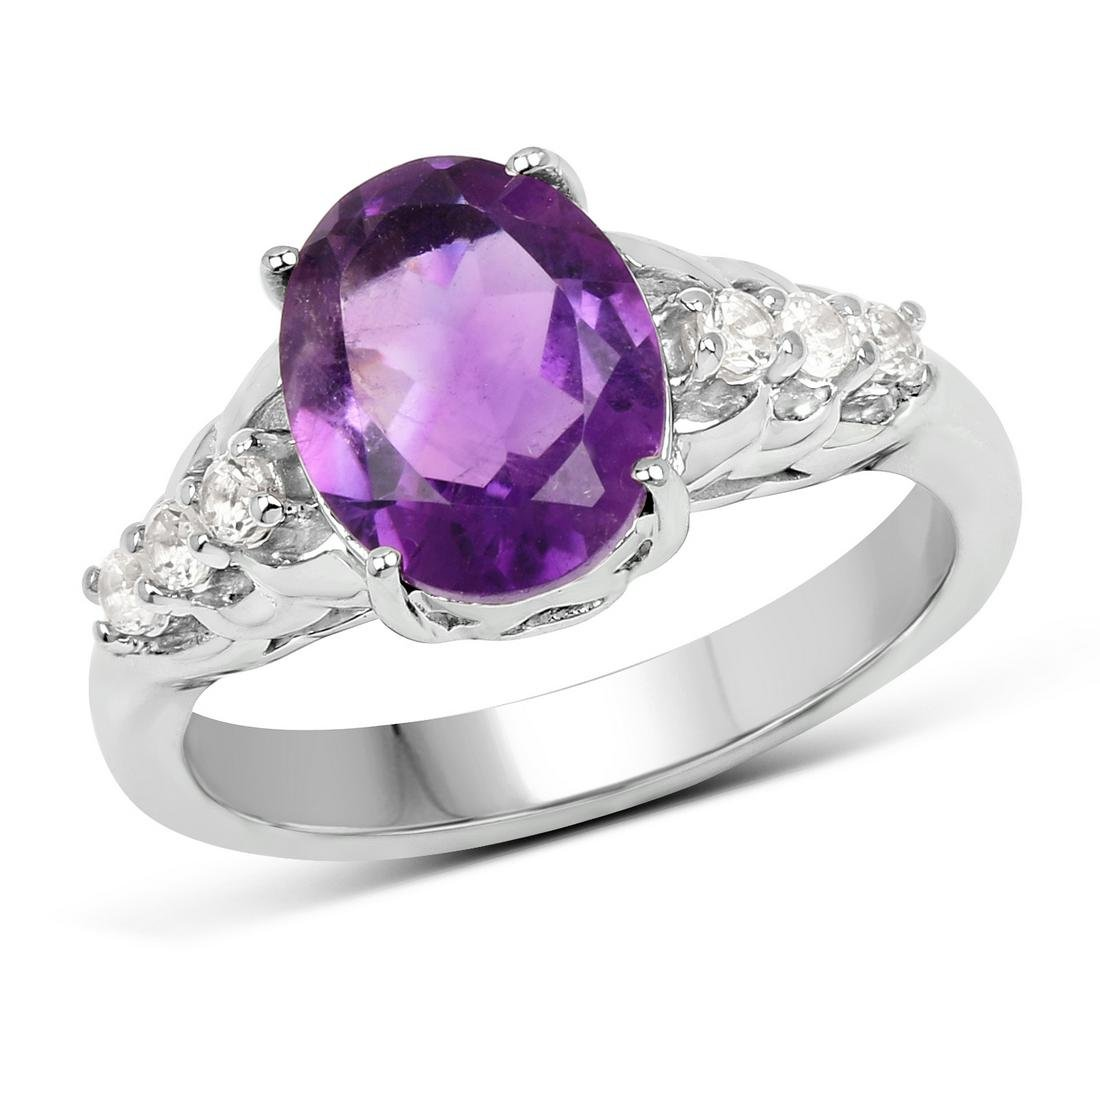 APP: 0.3k Gorgeous Sterling Silver 2.32CT Amethyst Ring